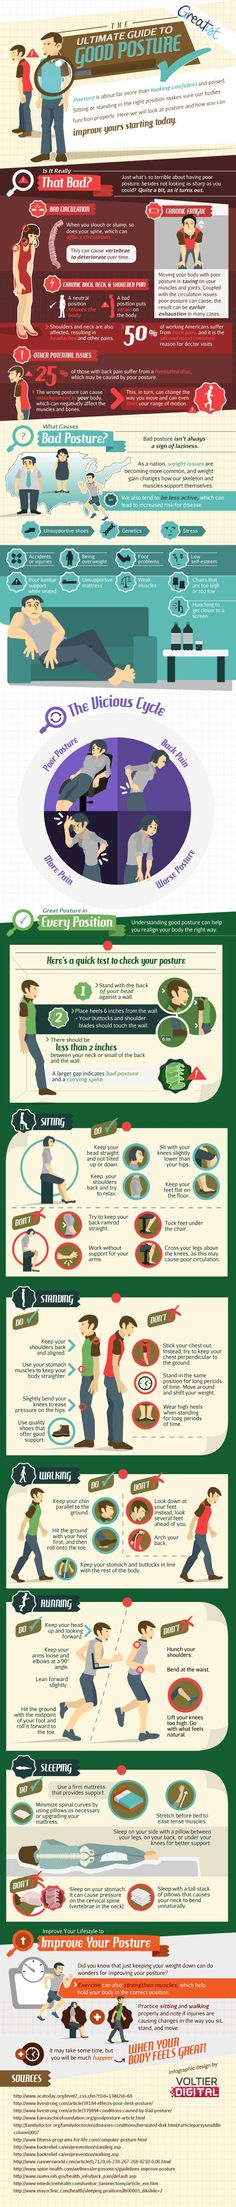 The Ultimate Guide to Good Posture -- if I don't start at least TRYING to sit up straight I'm gonna be hunch backed by the time I'm 25 :(